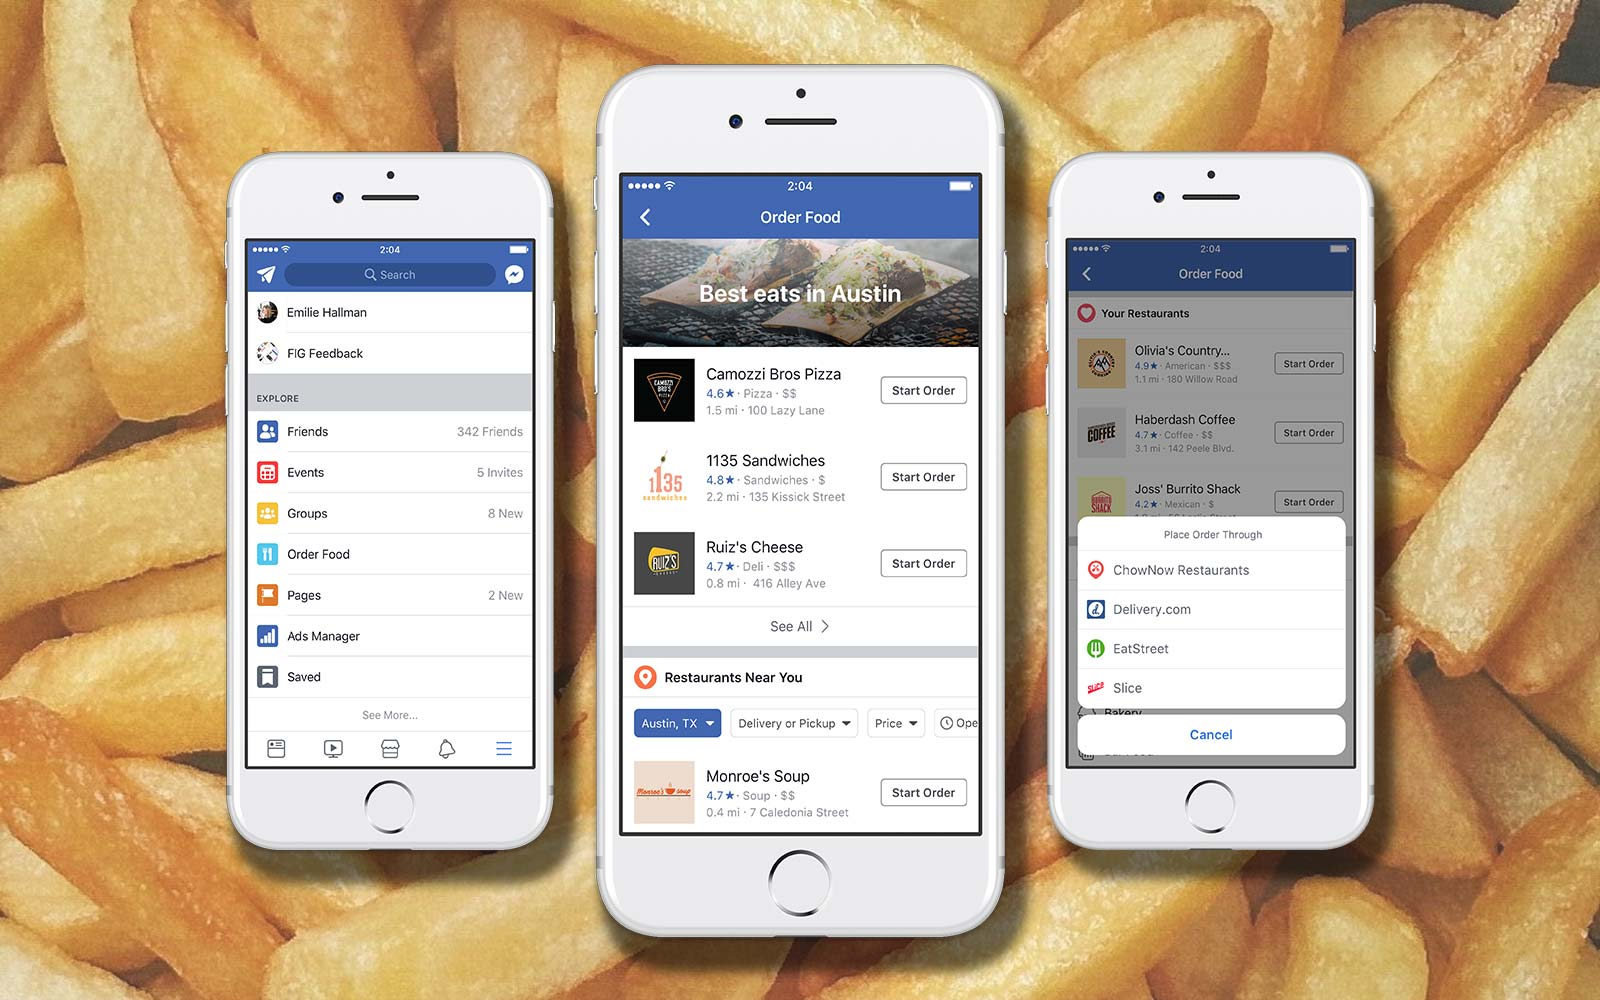 How to Use Facebook's Food Delivery Service